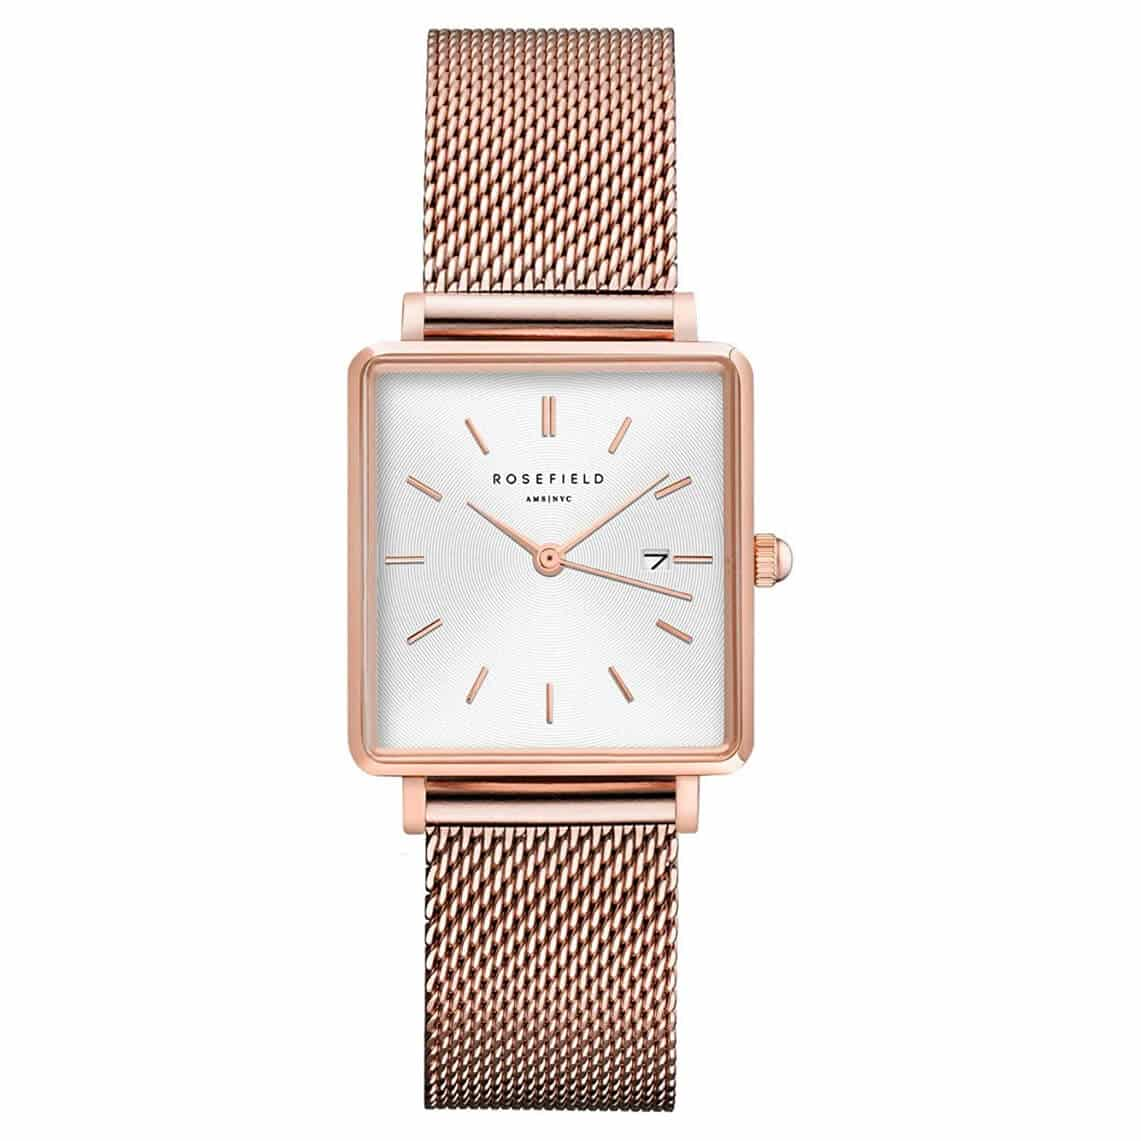 Rosefield Women's Year-Round Quartz Watch with Stainless Steel Strap, Rose Gold